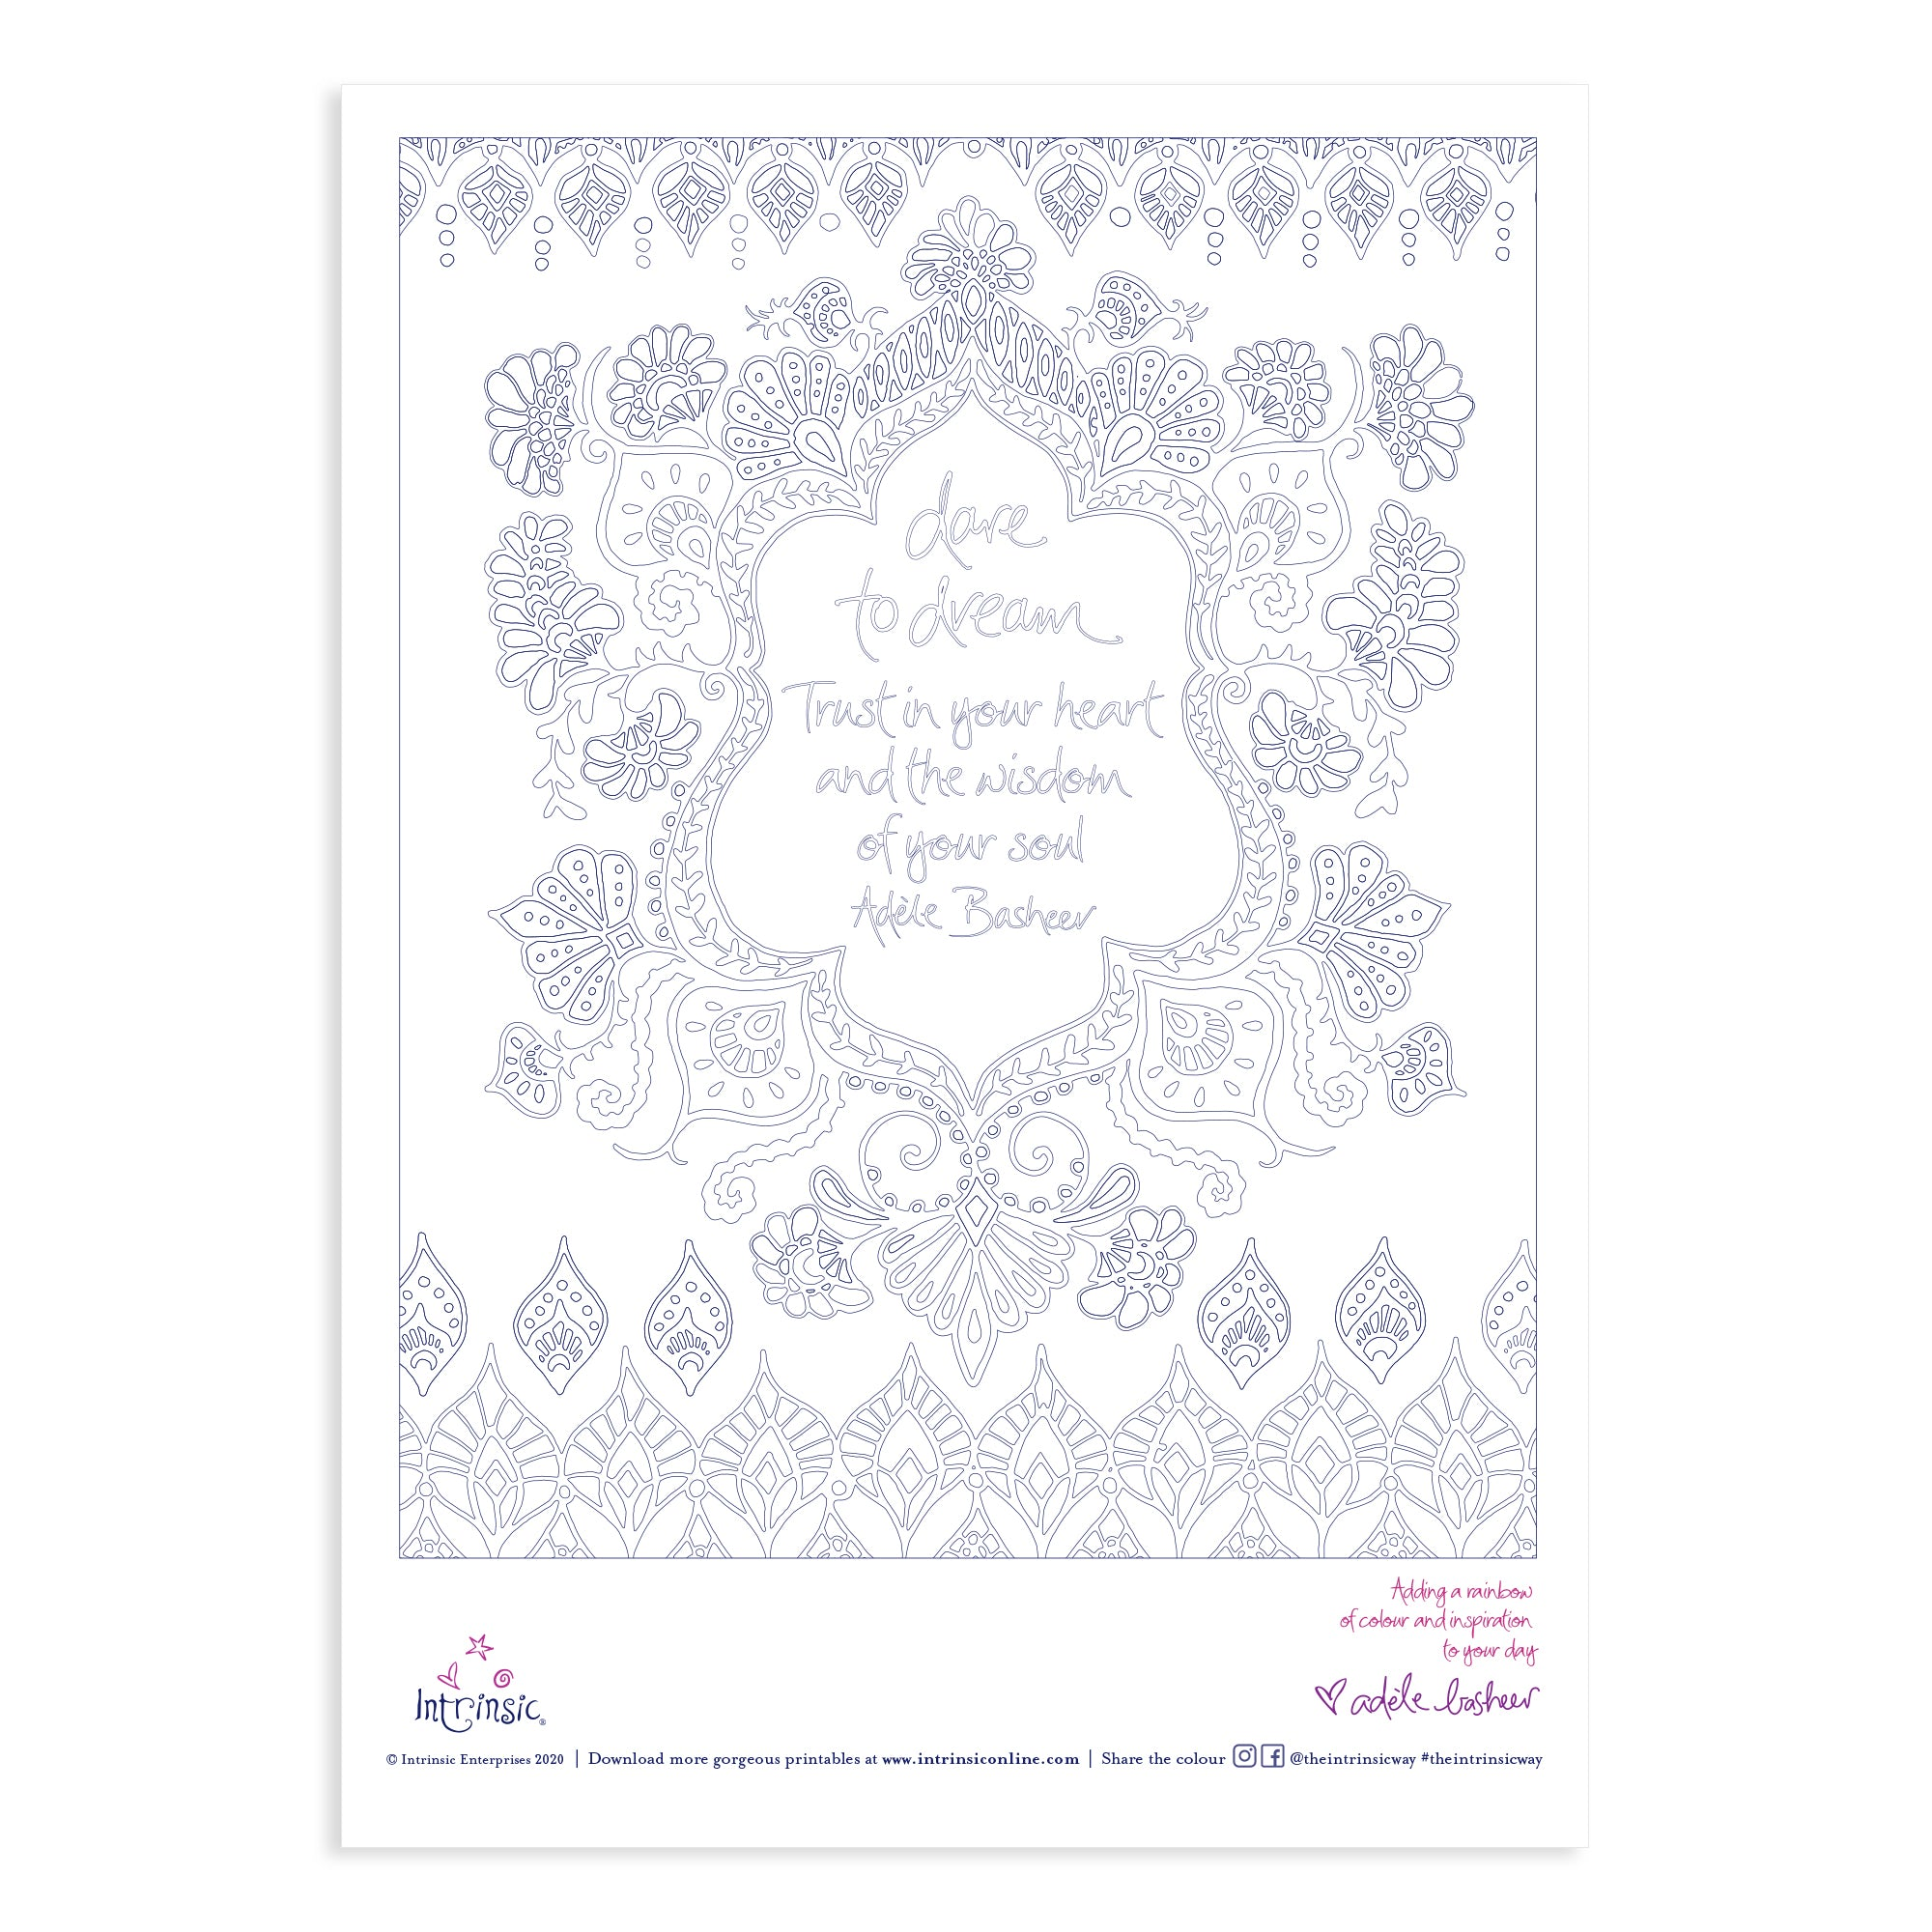 Download Intrinsic's Dare To Dream Colouring In Printable #22